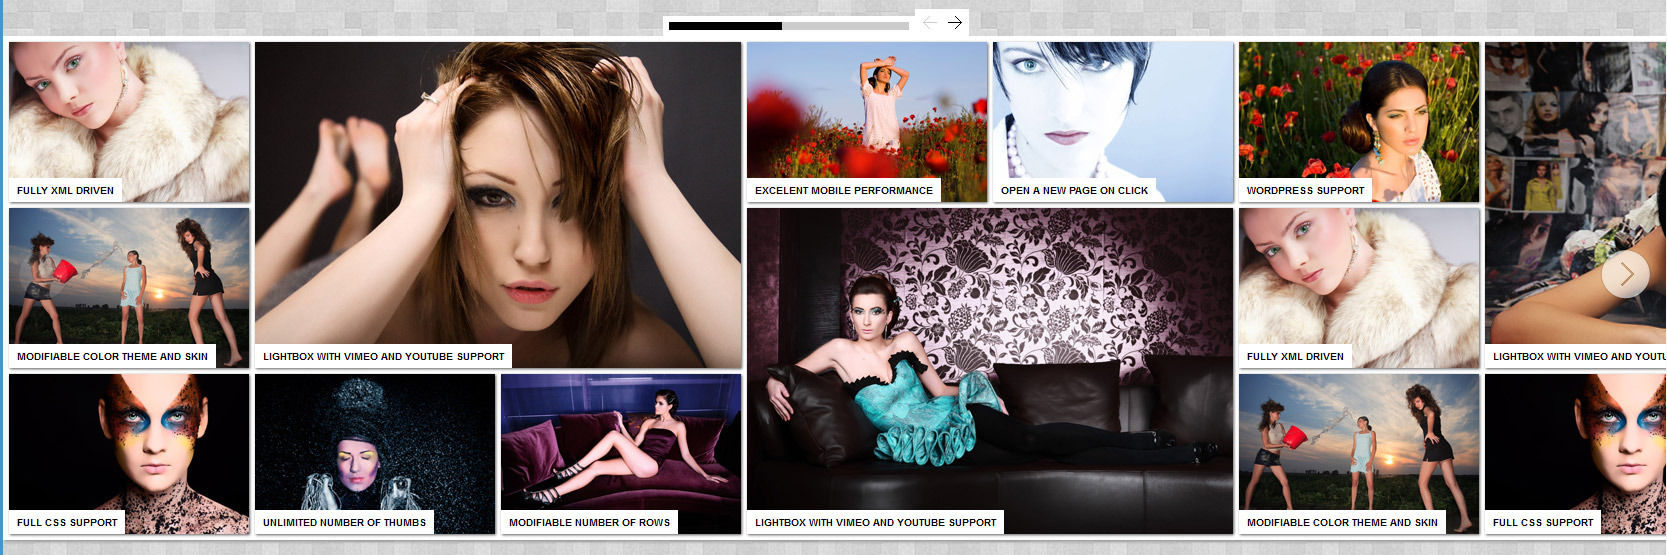 HTML5 Media Picture Gallery